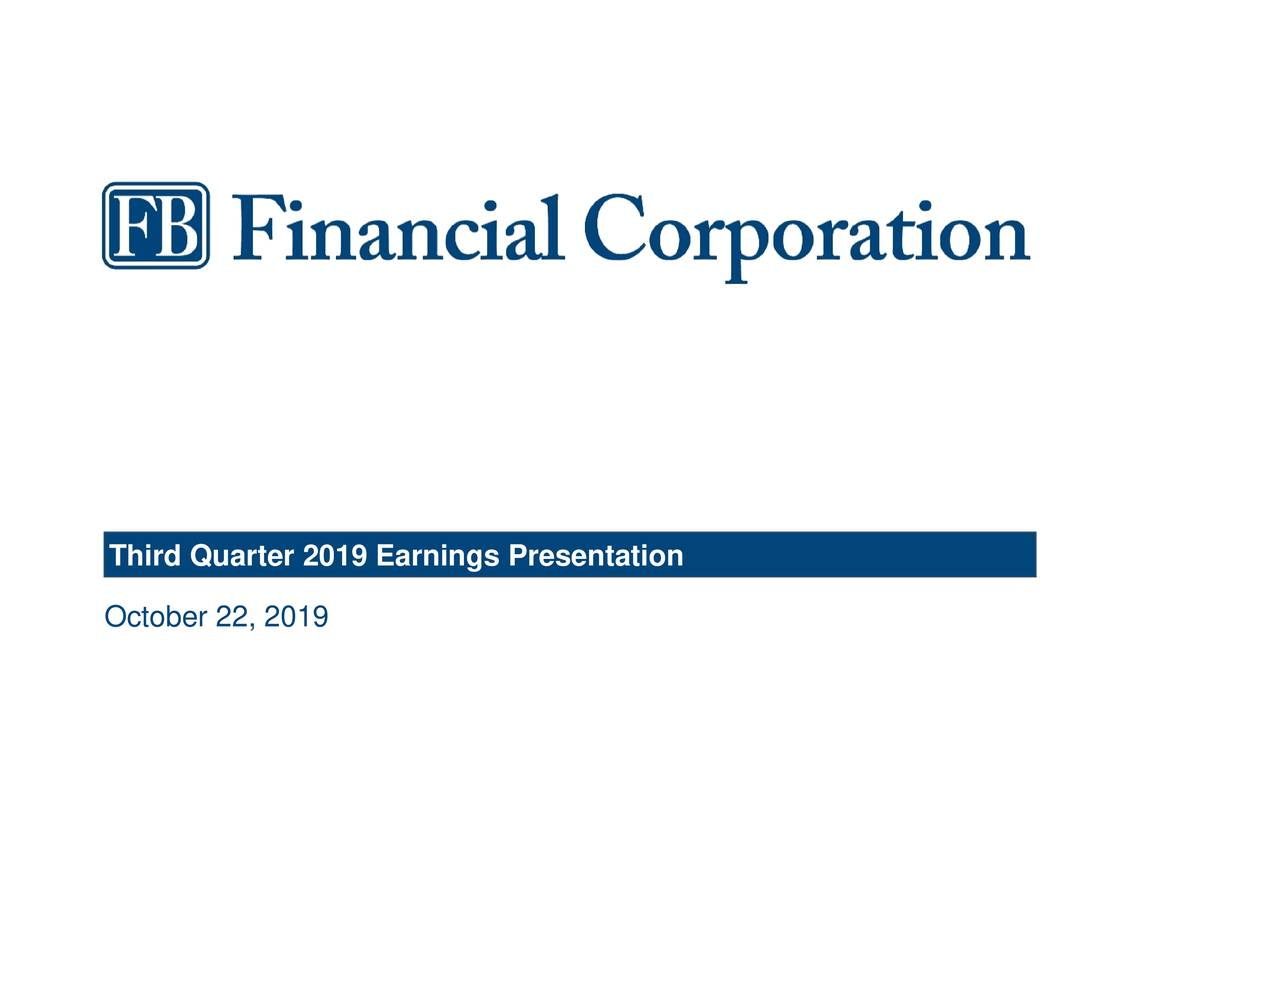 FB Financial Corporation 2019 Q3 - Results - Earnings Call Presentation